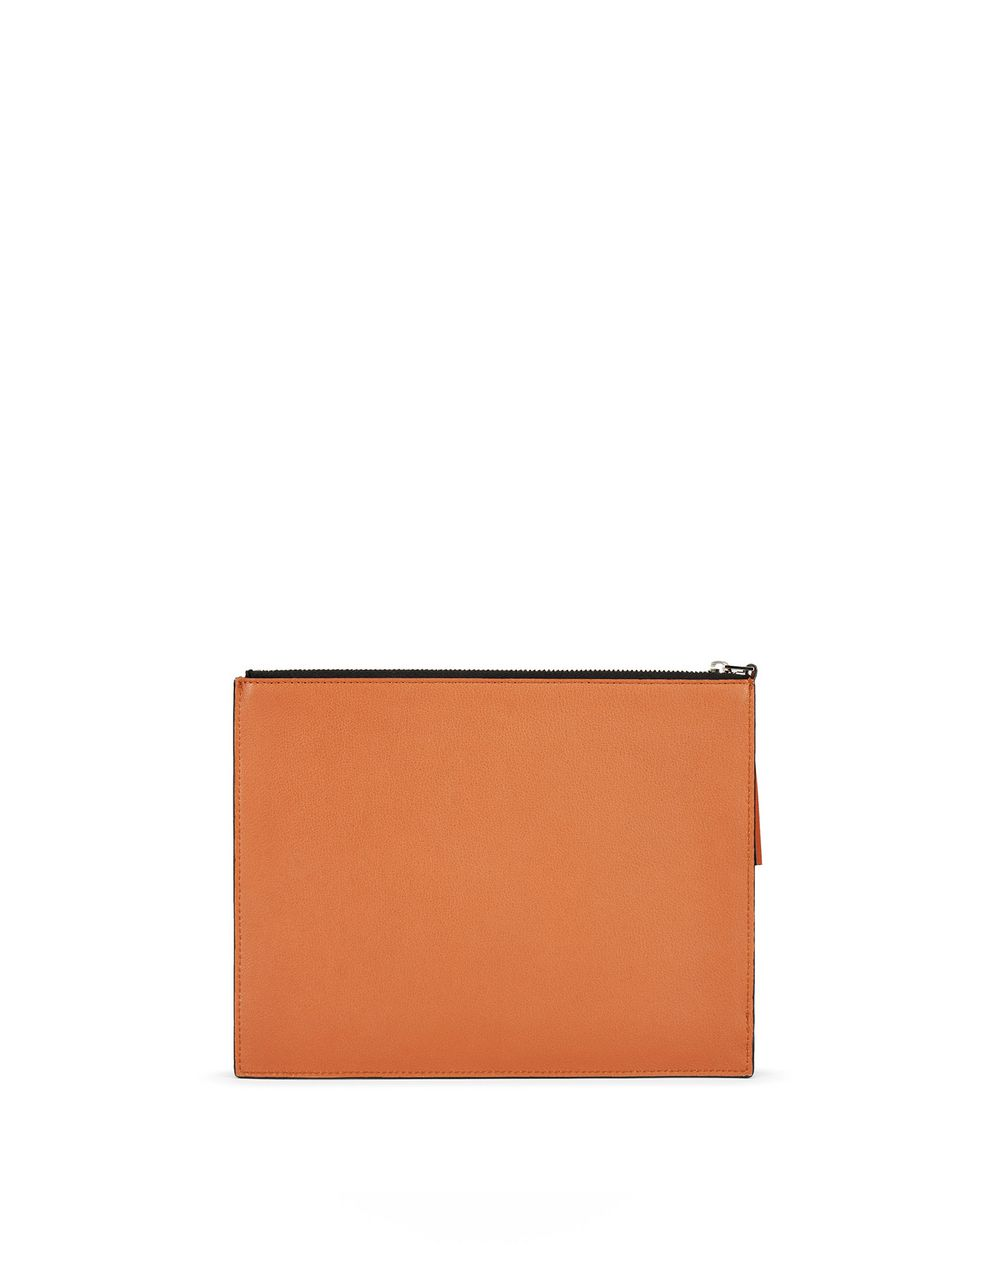 BABAR PRINT ZIPPED CLUTCH - Lanvin